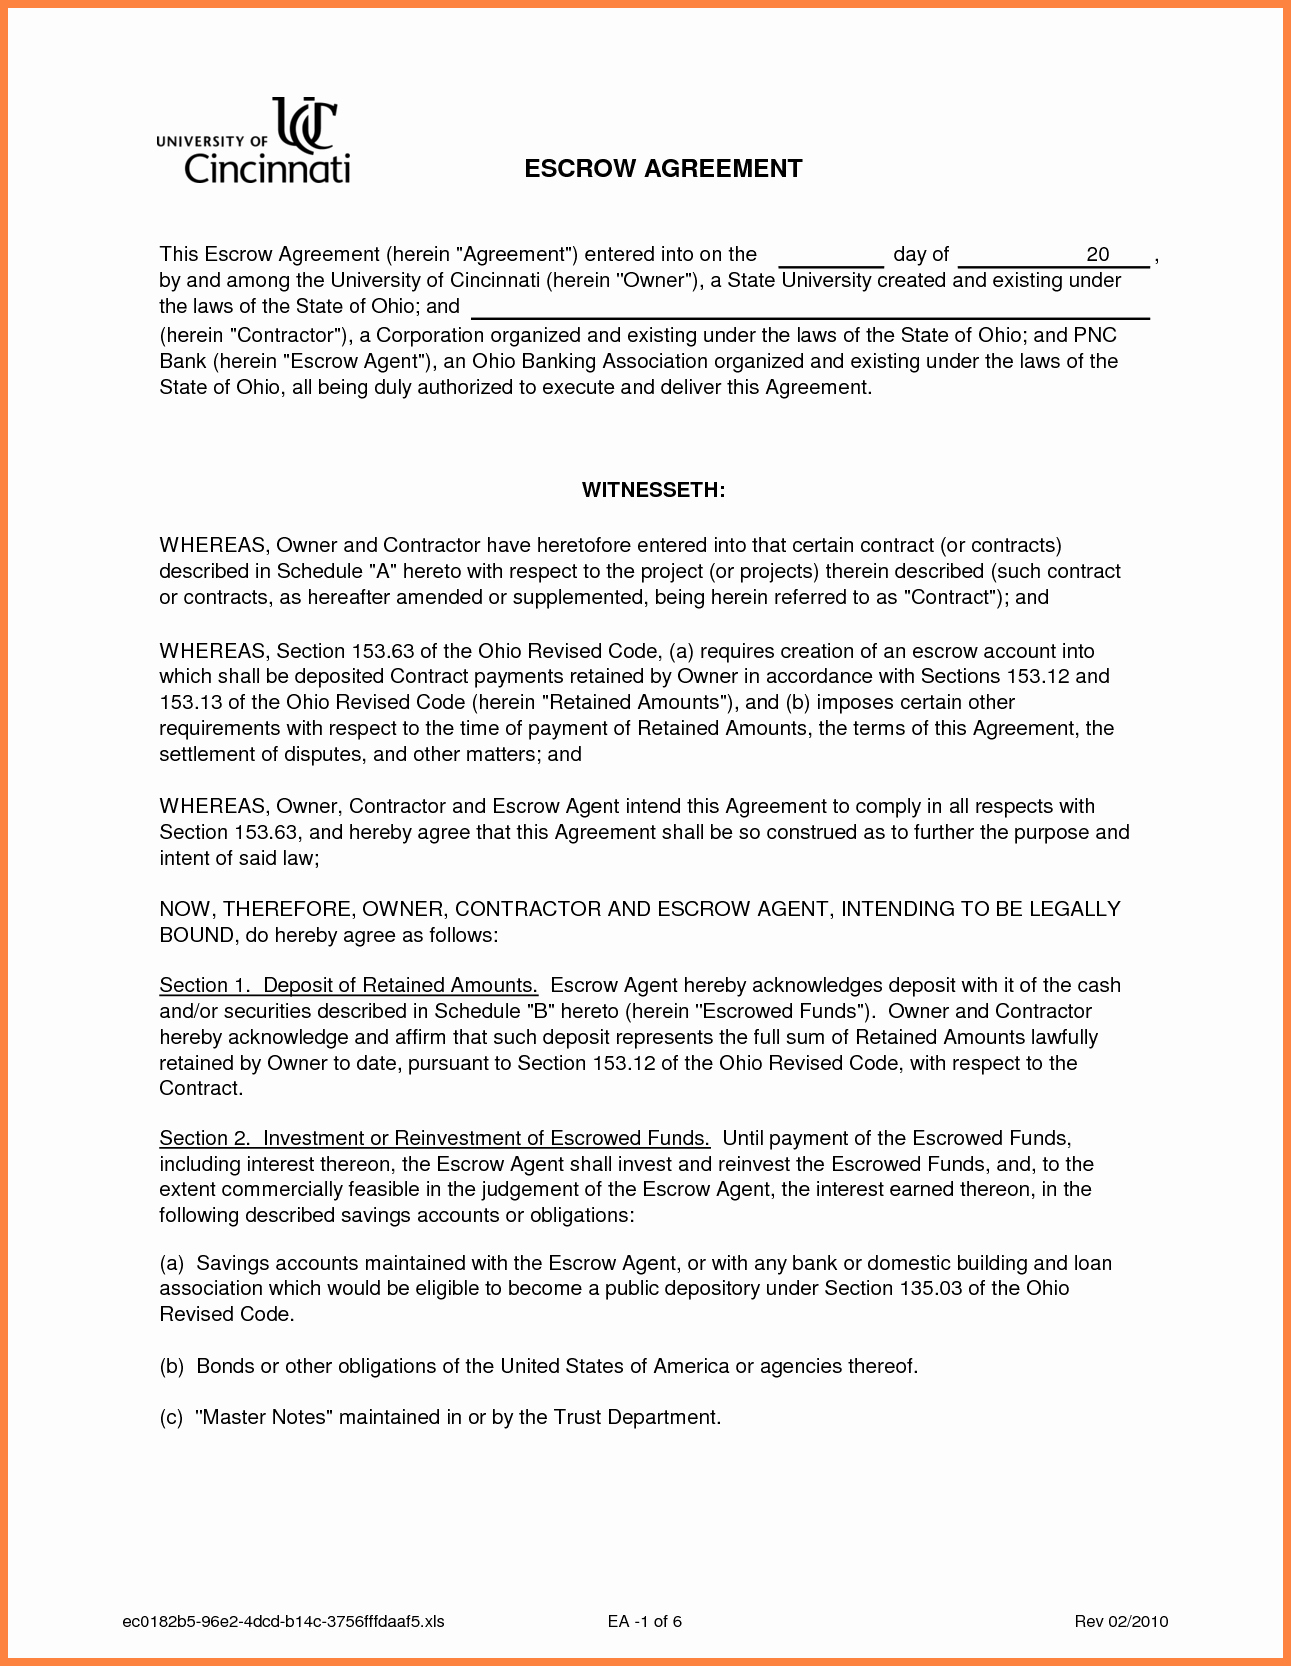 Simple Payment Agreement Template Between Two Parties Unique Payment Agreement Between Two Parties and Simple Loan with